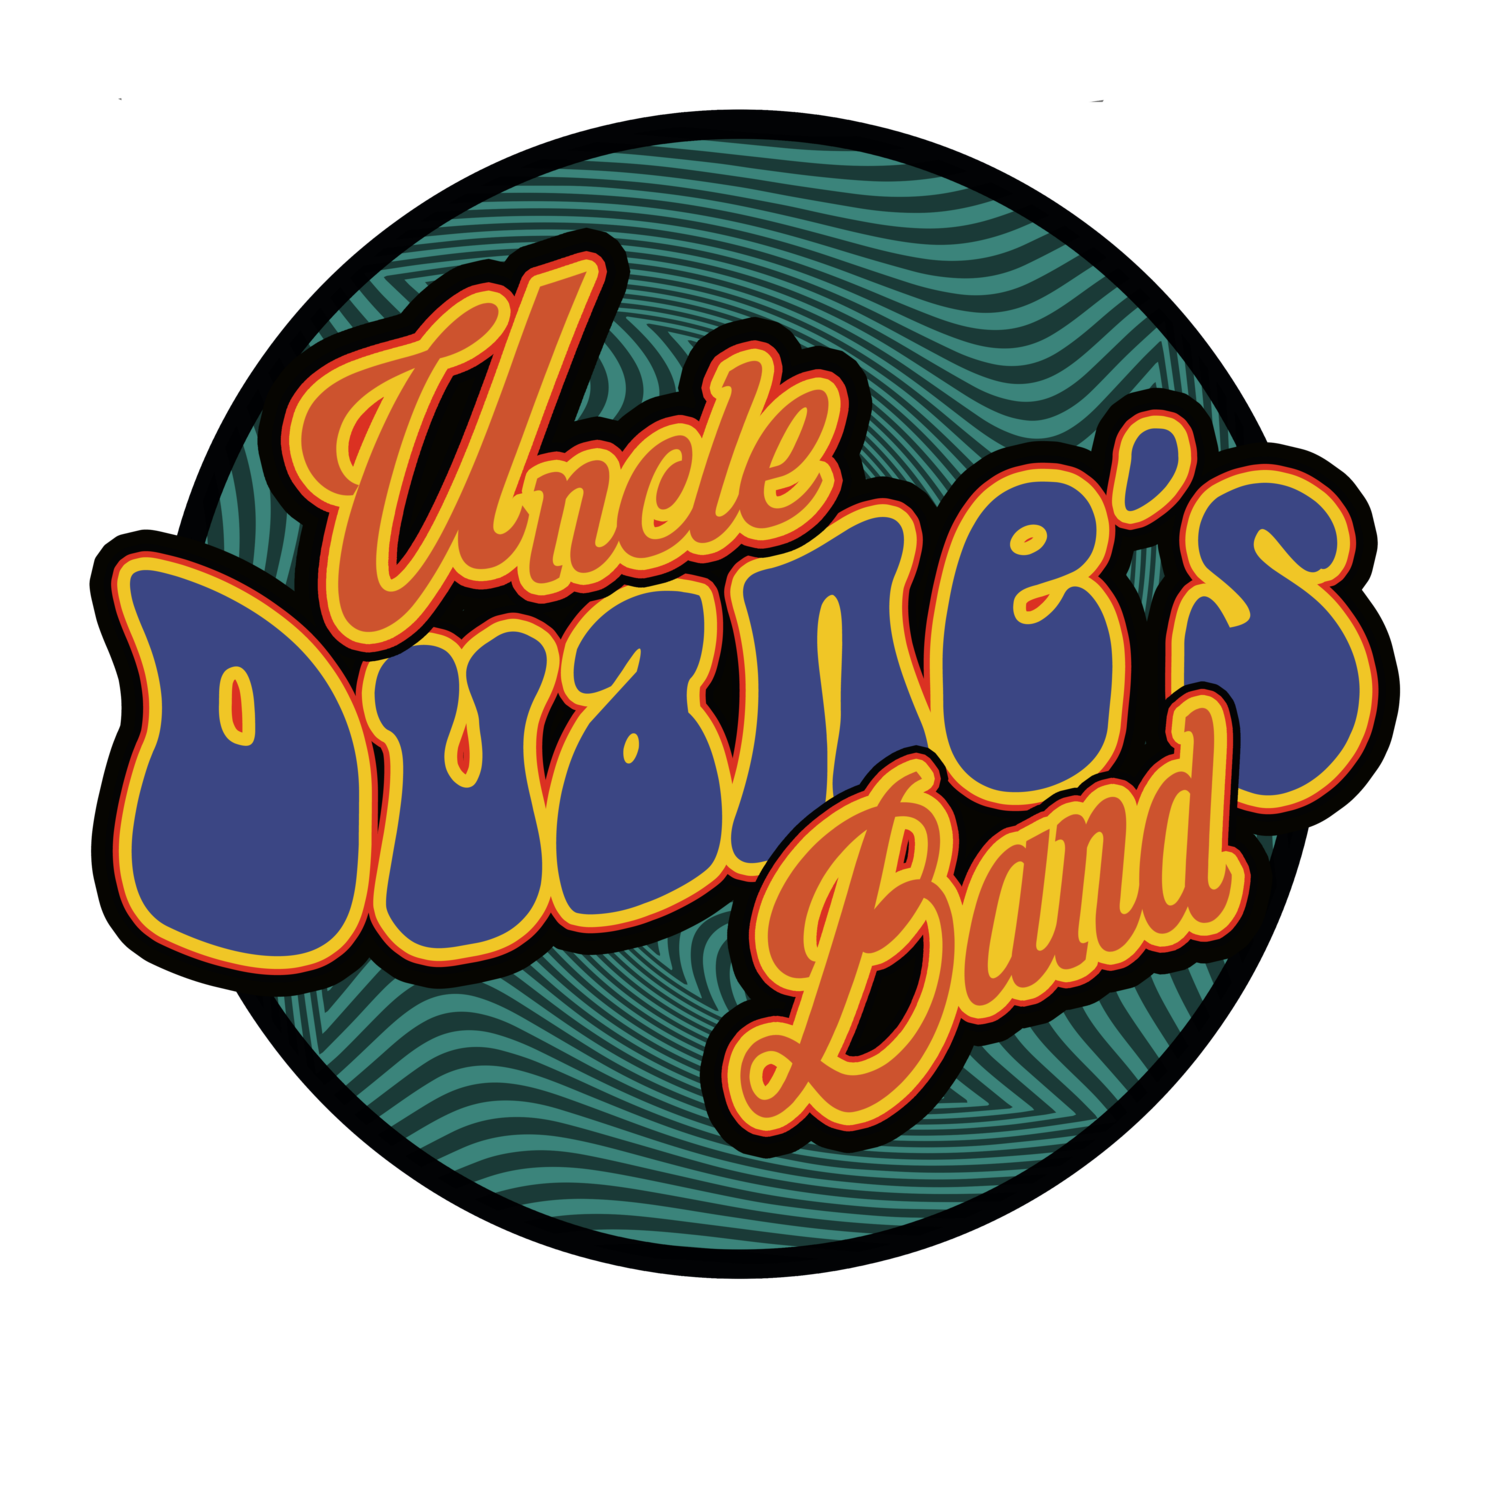 Uncle Duane's Band